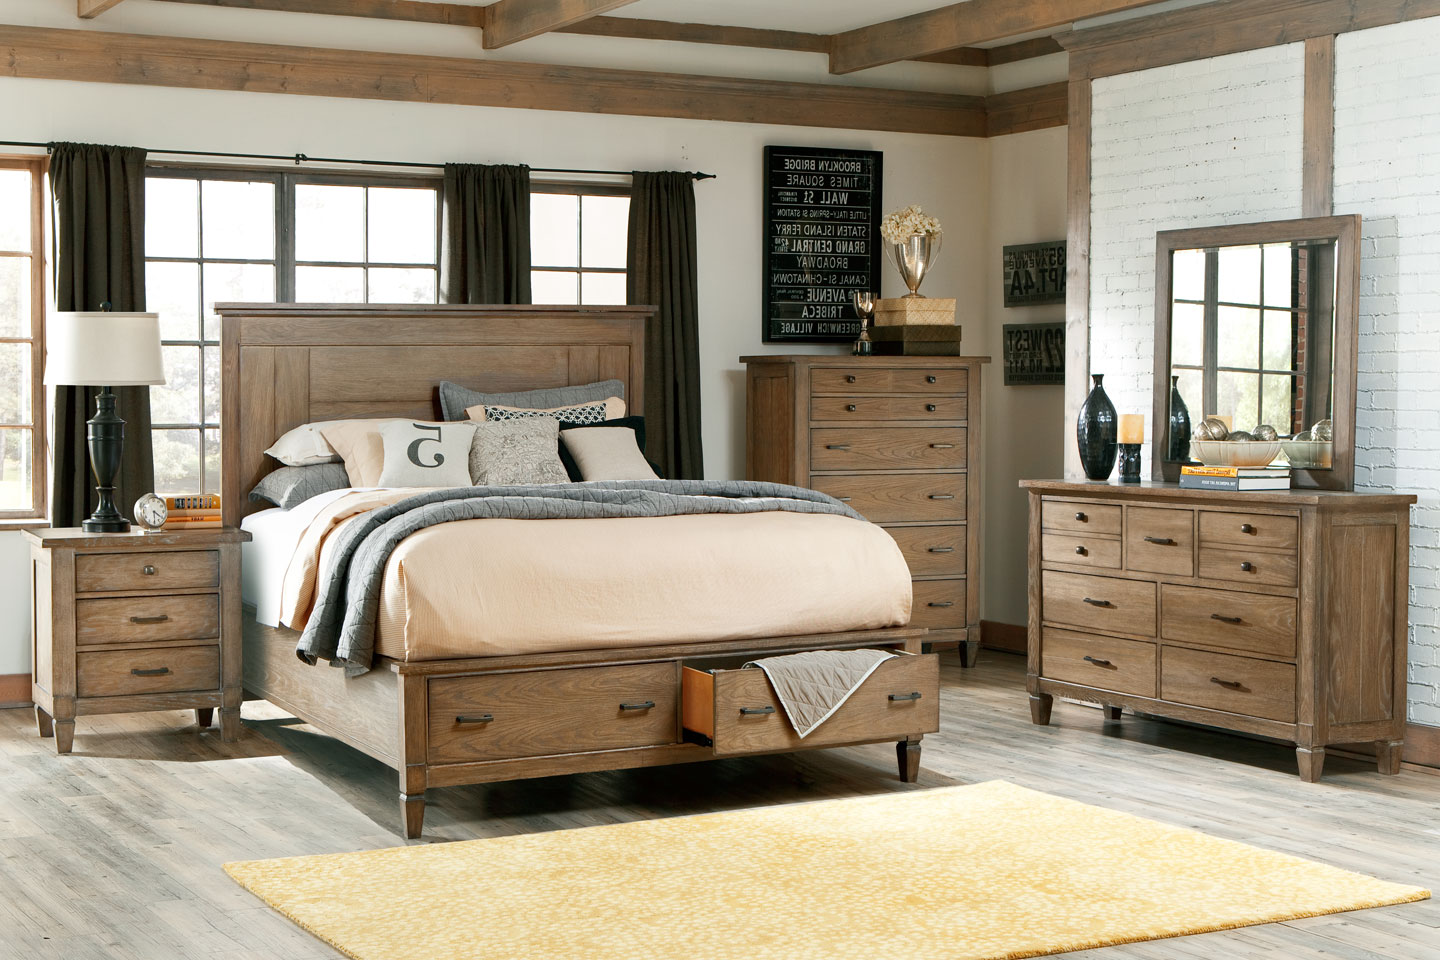 Gavin wood bedroom furniture collection wood bedroom for Furniture bedroom